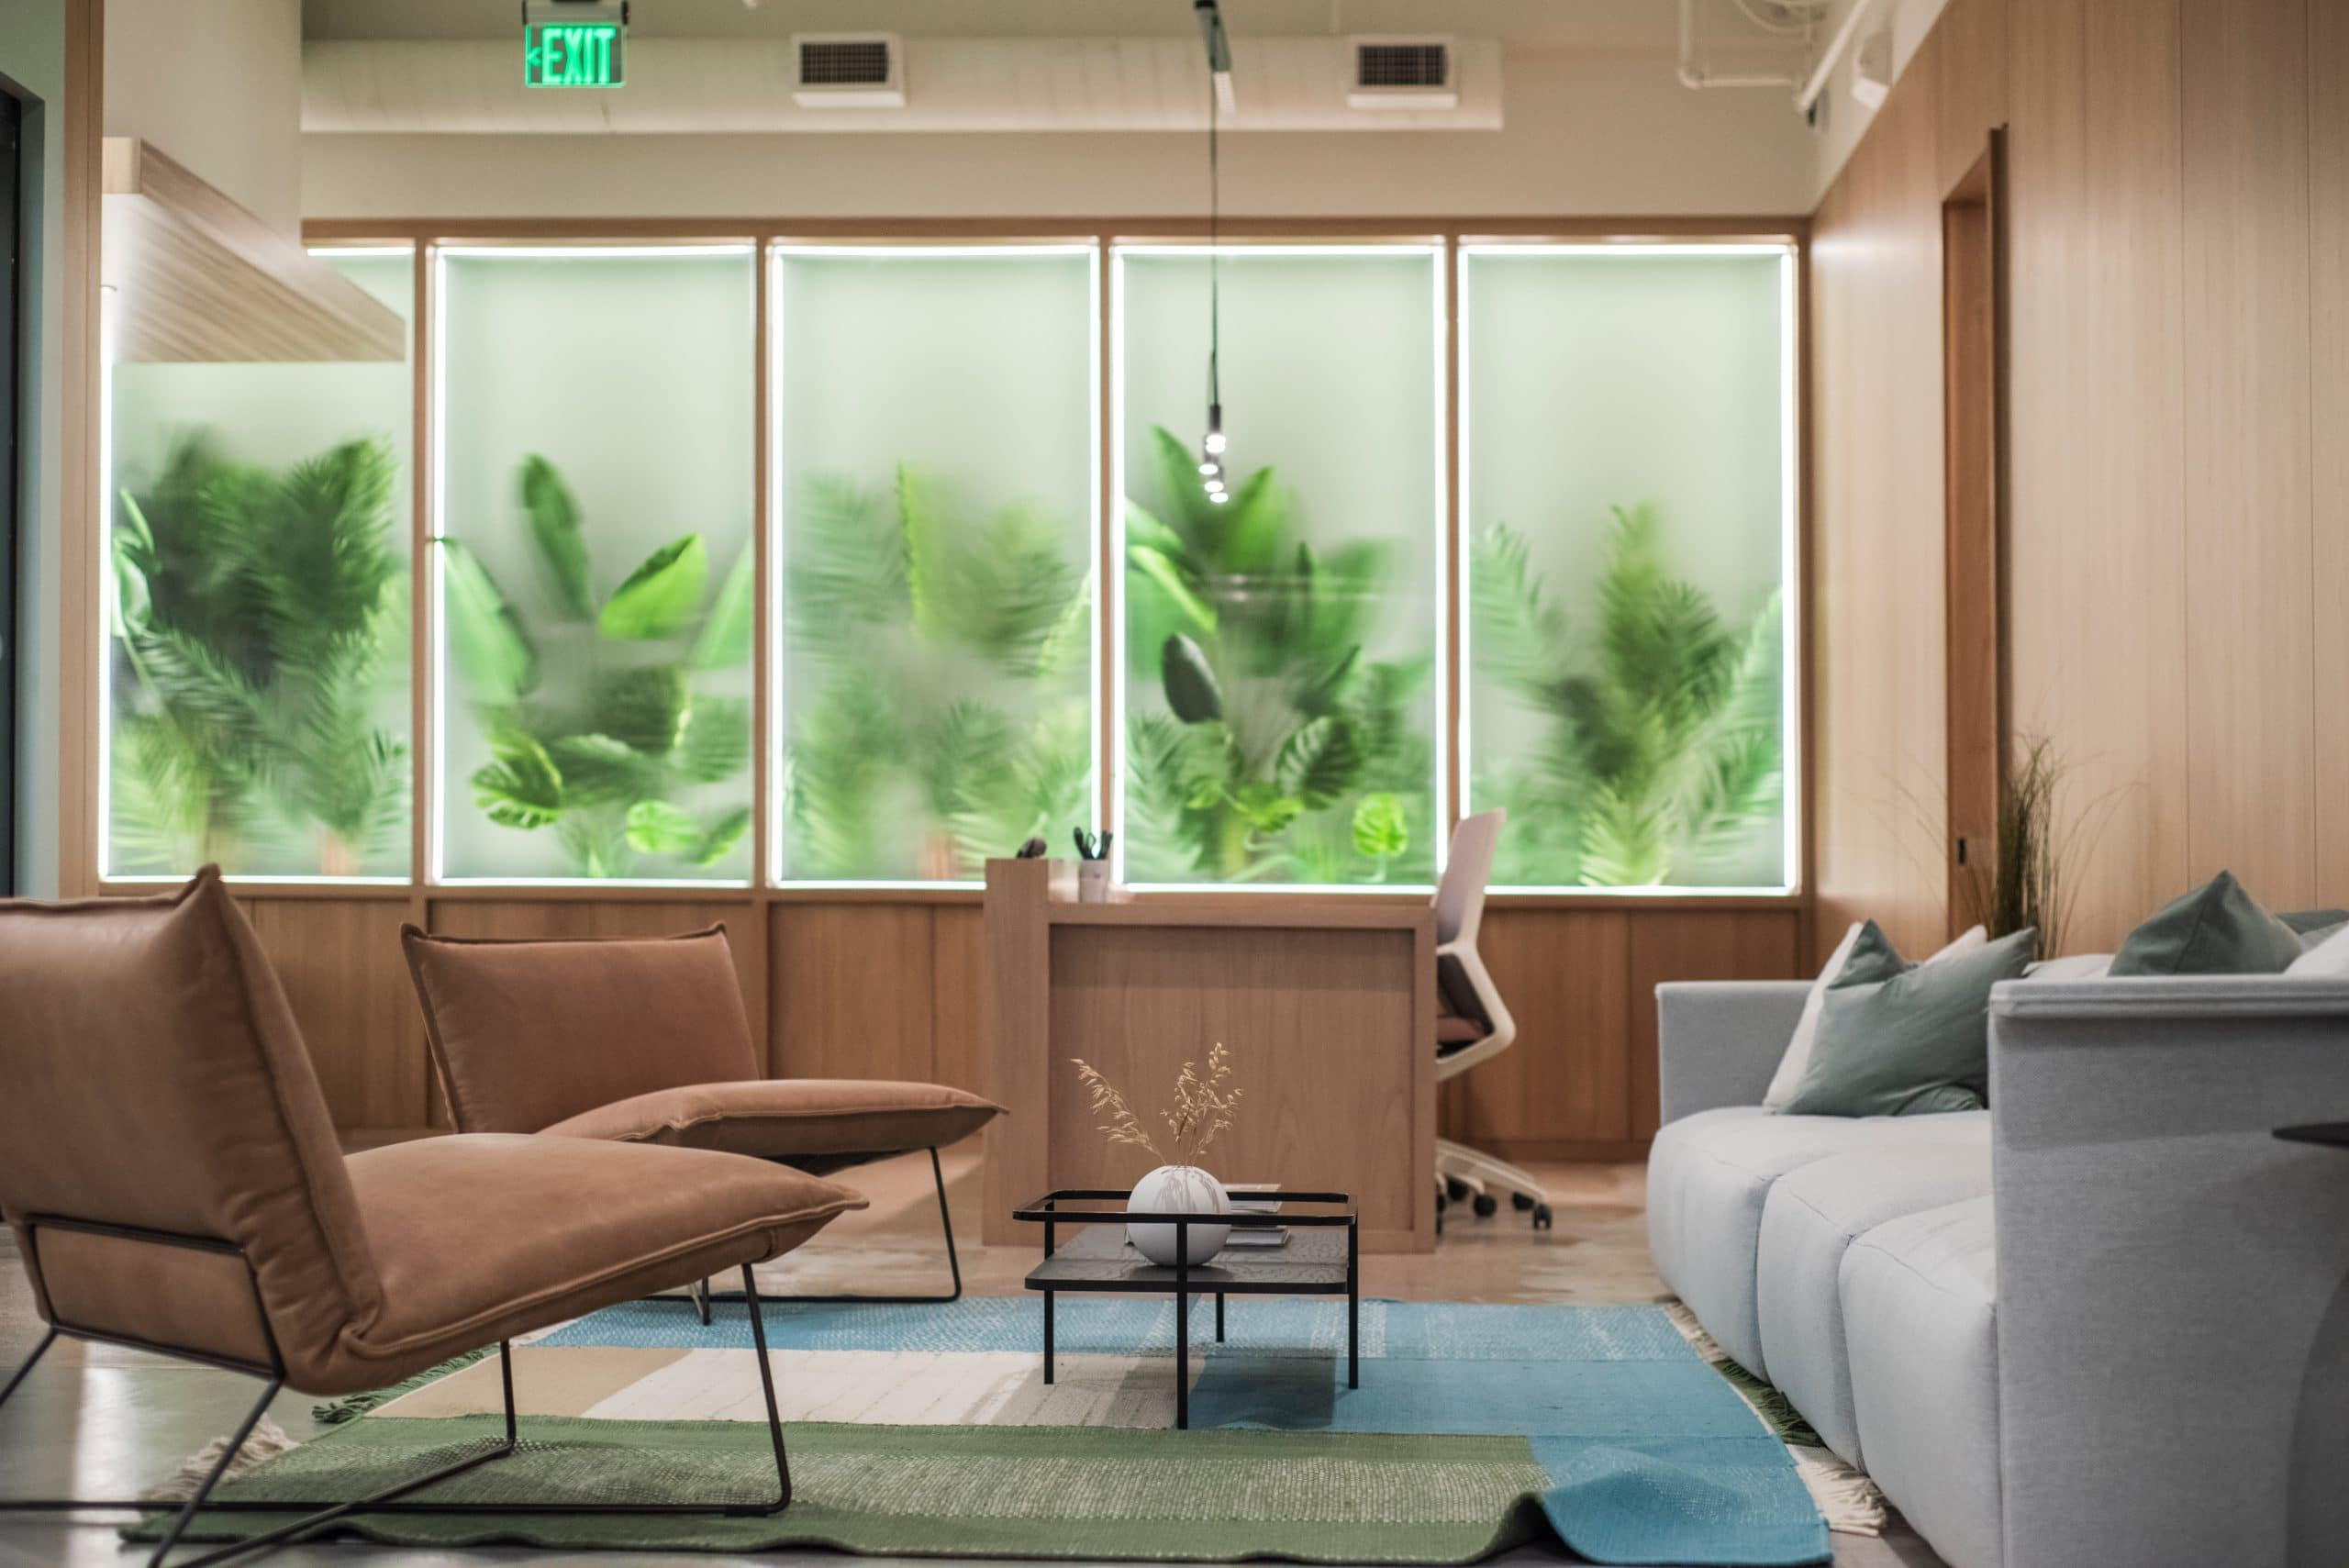 6 Things You Need to Design The Perfect Waiting Room